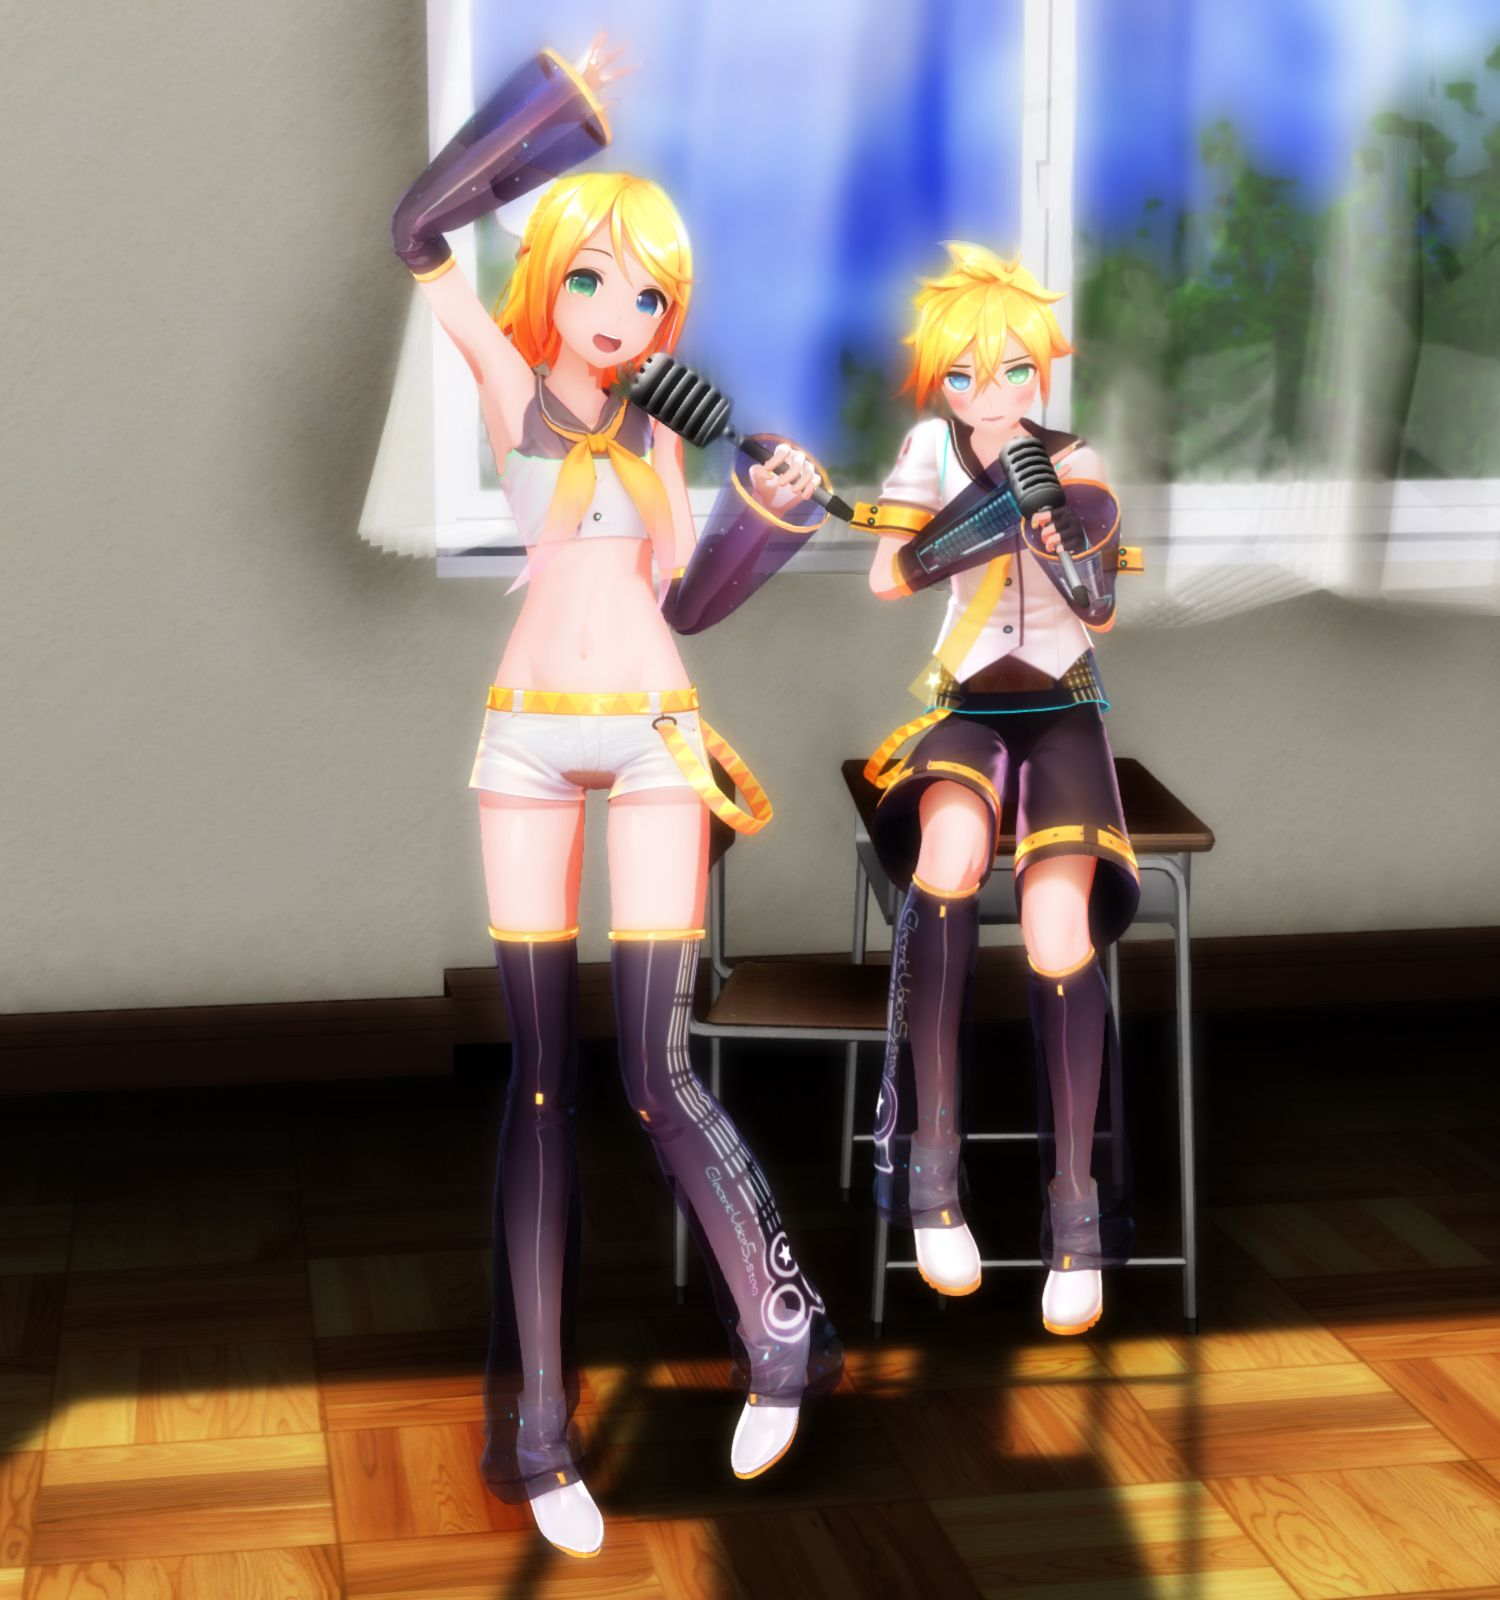 Pin by 愛と愛 on Vocaloid Vocaloid, Header image, Rin